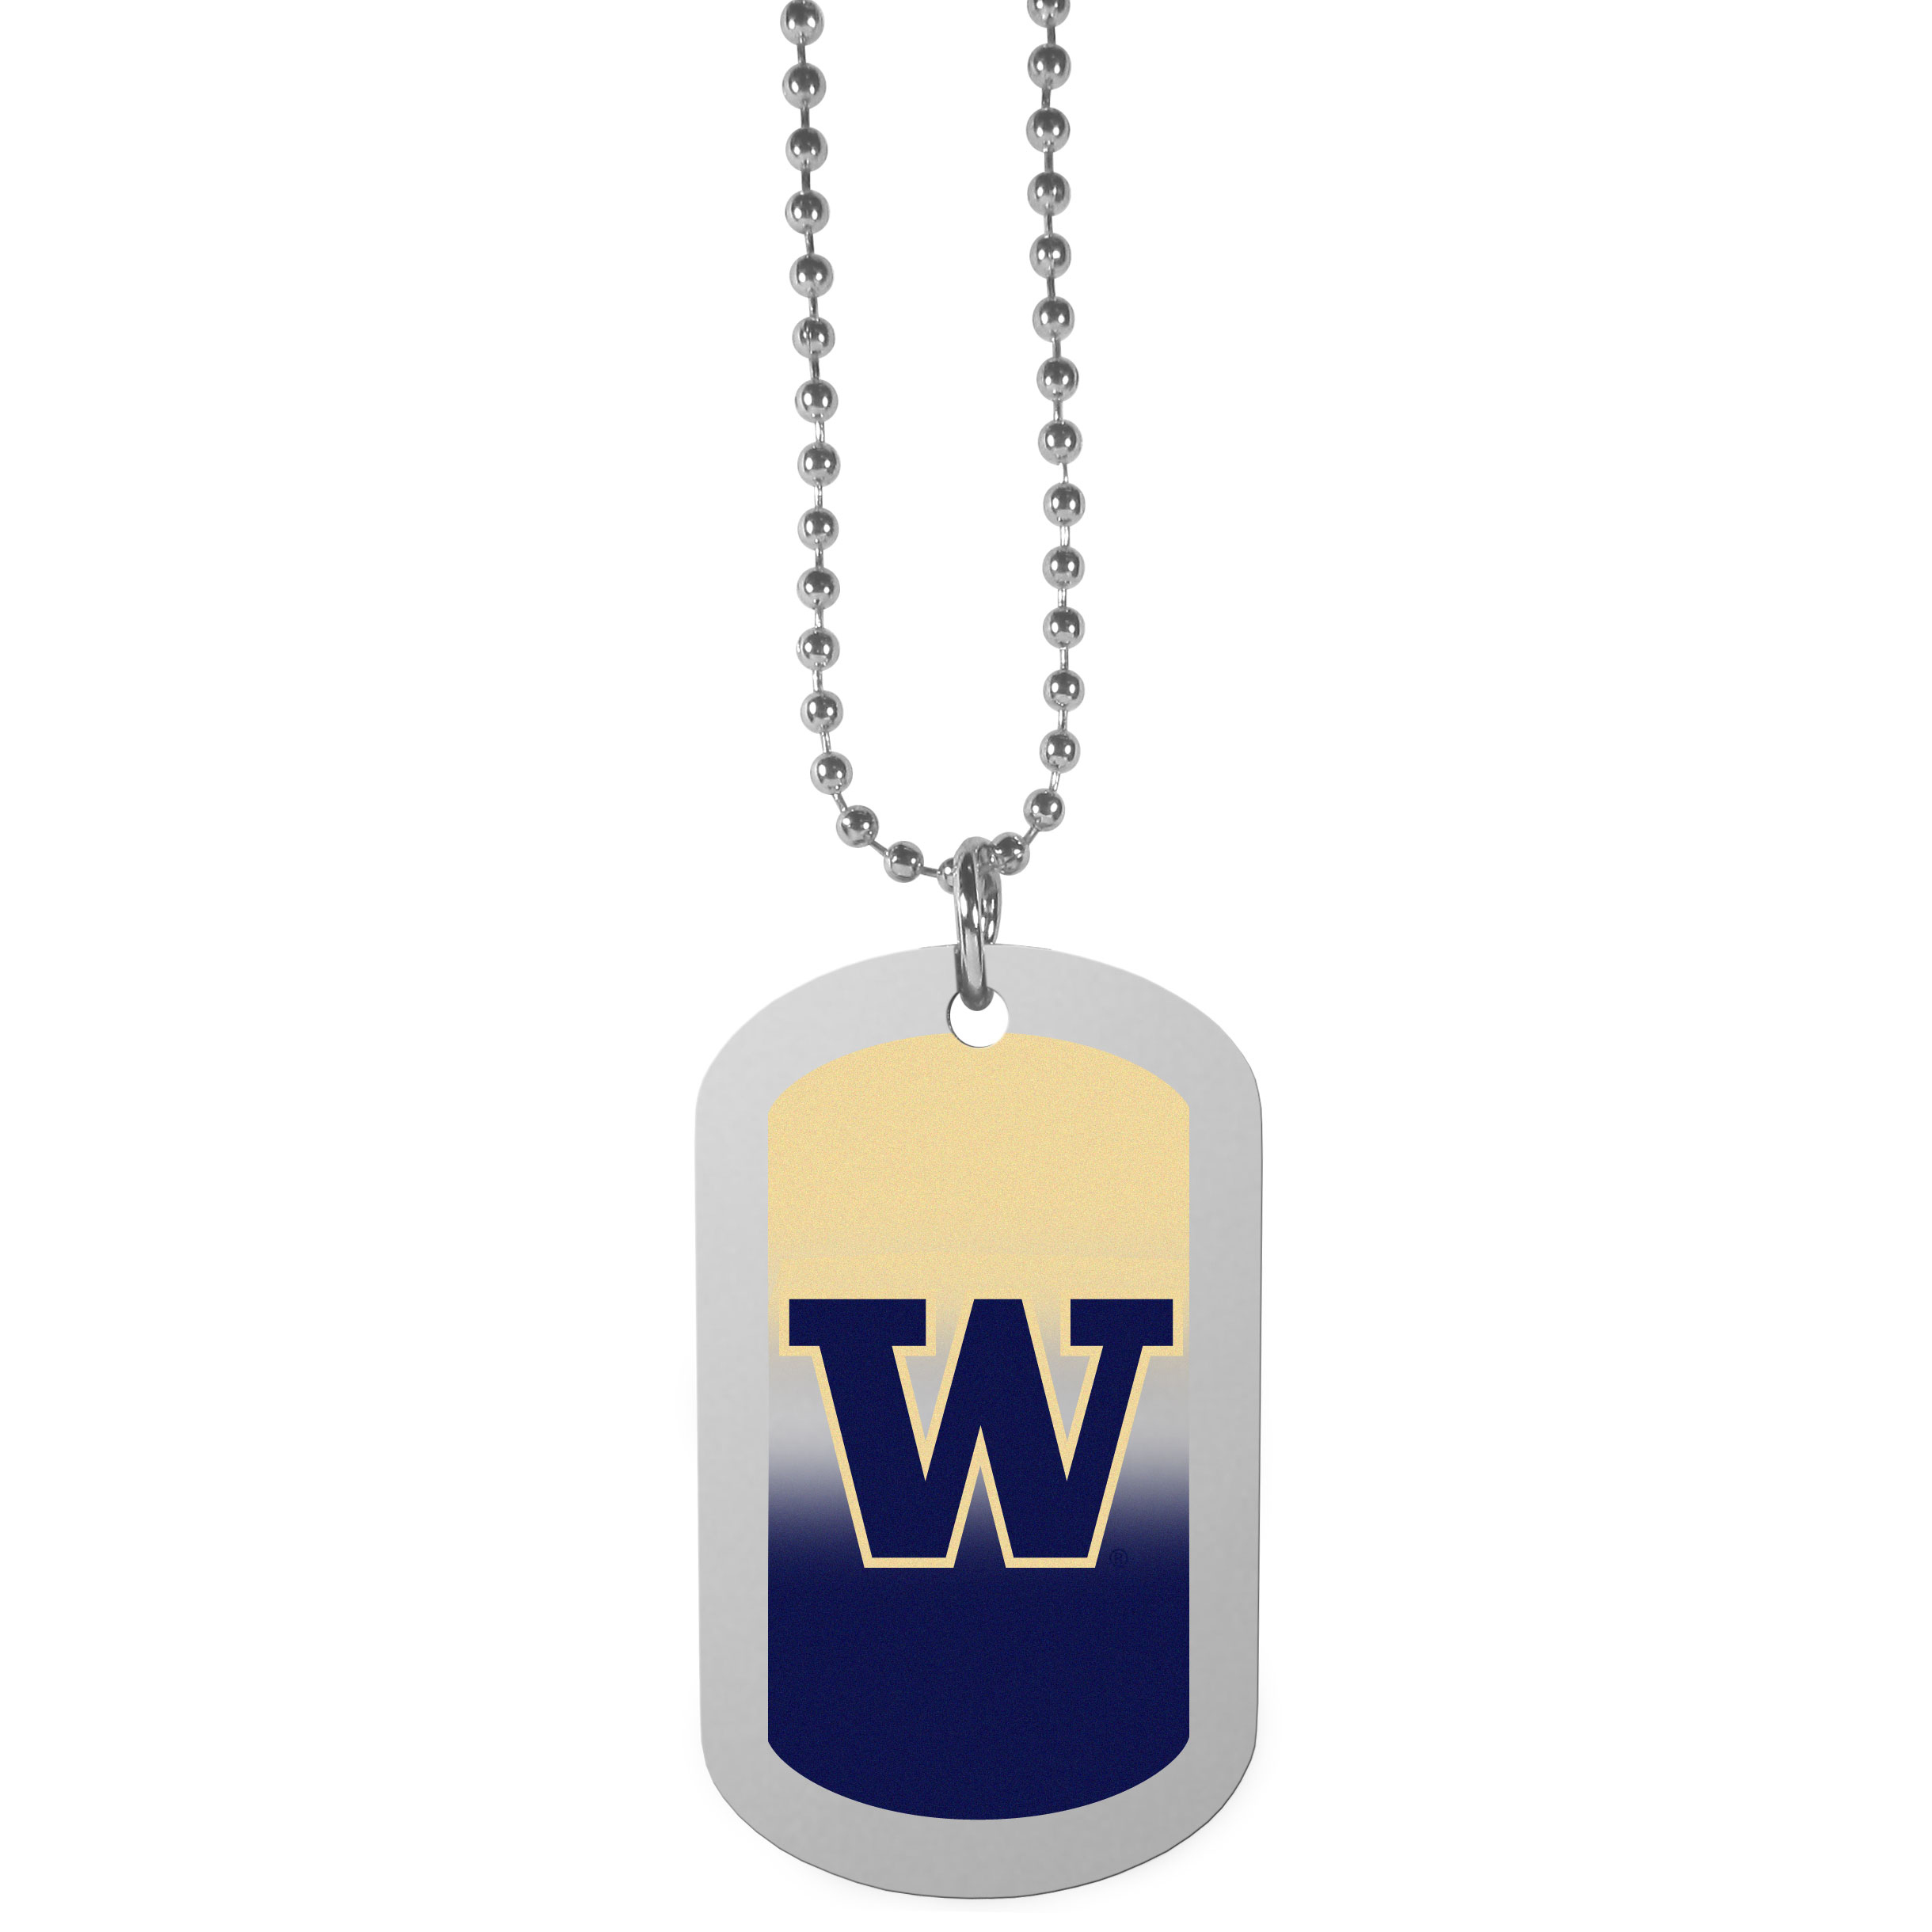 Washington Huskies Team Tag Necklace - Dog tag necklaces are a fashion statement that is here to stay. The sporty version of the classic tag features a gradient print in team colors featuring a full color team logo over a high polish tag to create a bold and sporty look. The tag comes on a 26 inch ball chain with a ball and joint clasp. Any Washington Huskies would be proud to wear this attractive fashion accessory.